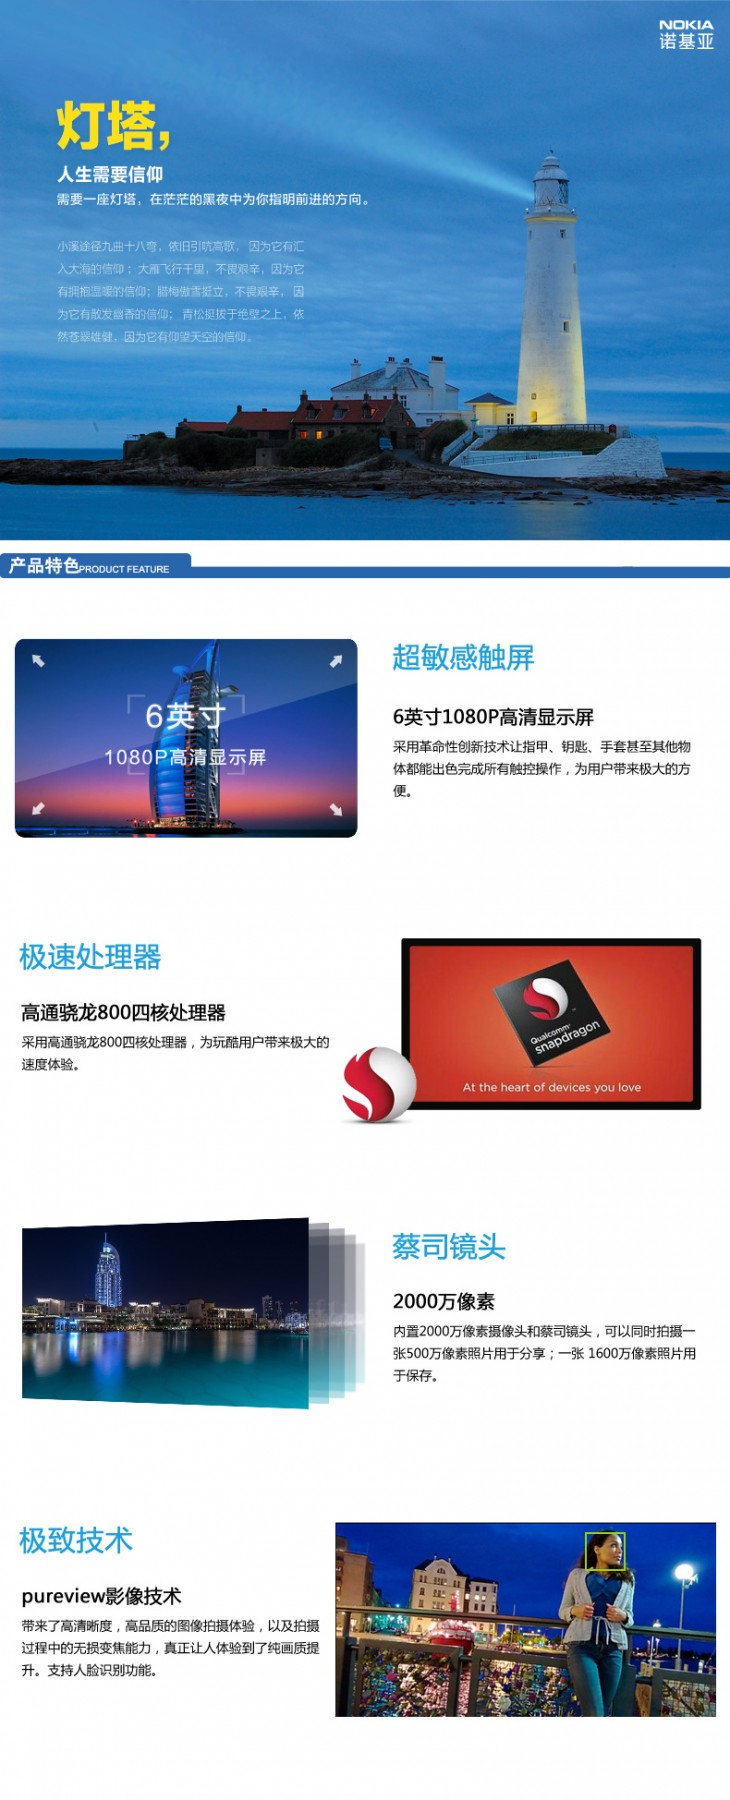 Nokia Lumia 1520 730x1800 Nokia leaks its Lumia 1520 phablet via a listing and promotional poster on its official Tmall shop